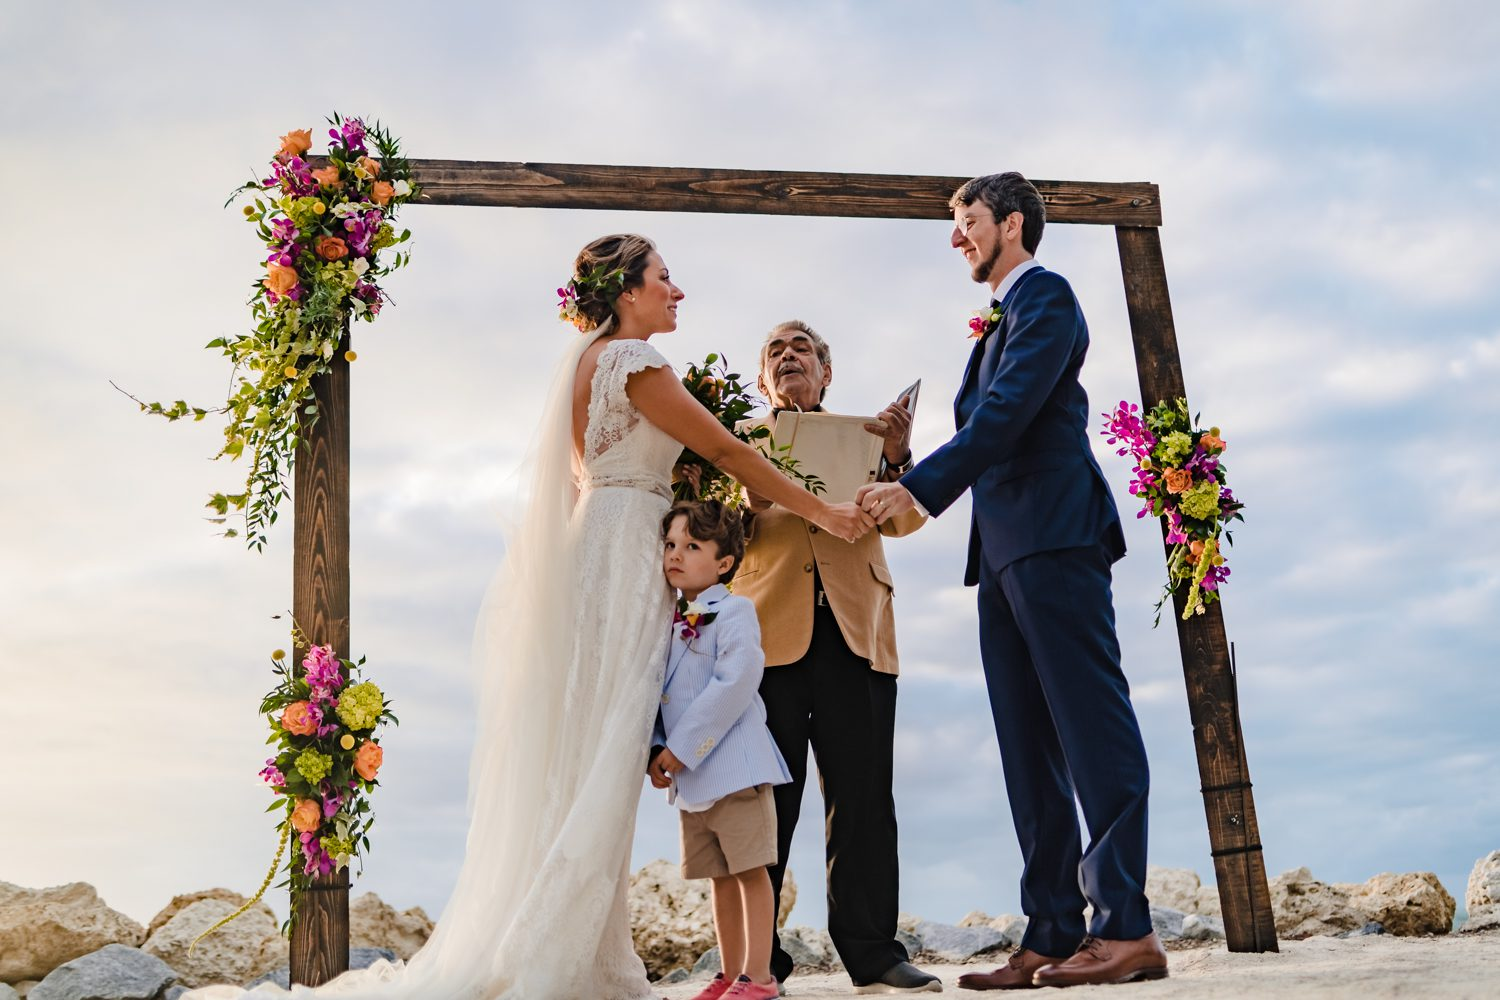 Bride and groom holding hands during wedding ceremony at fort zachary taylor